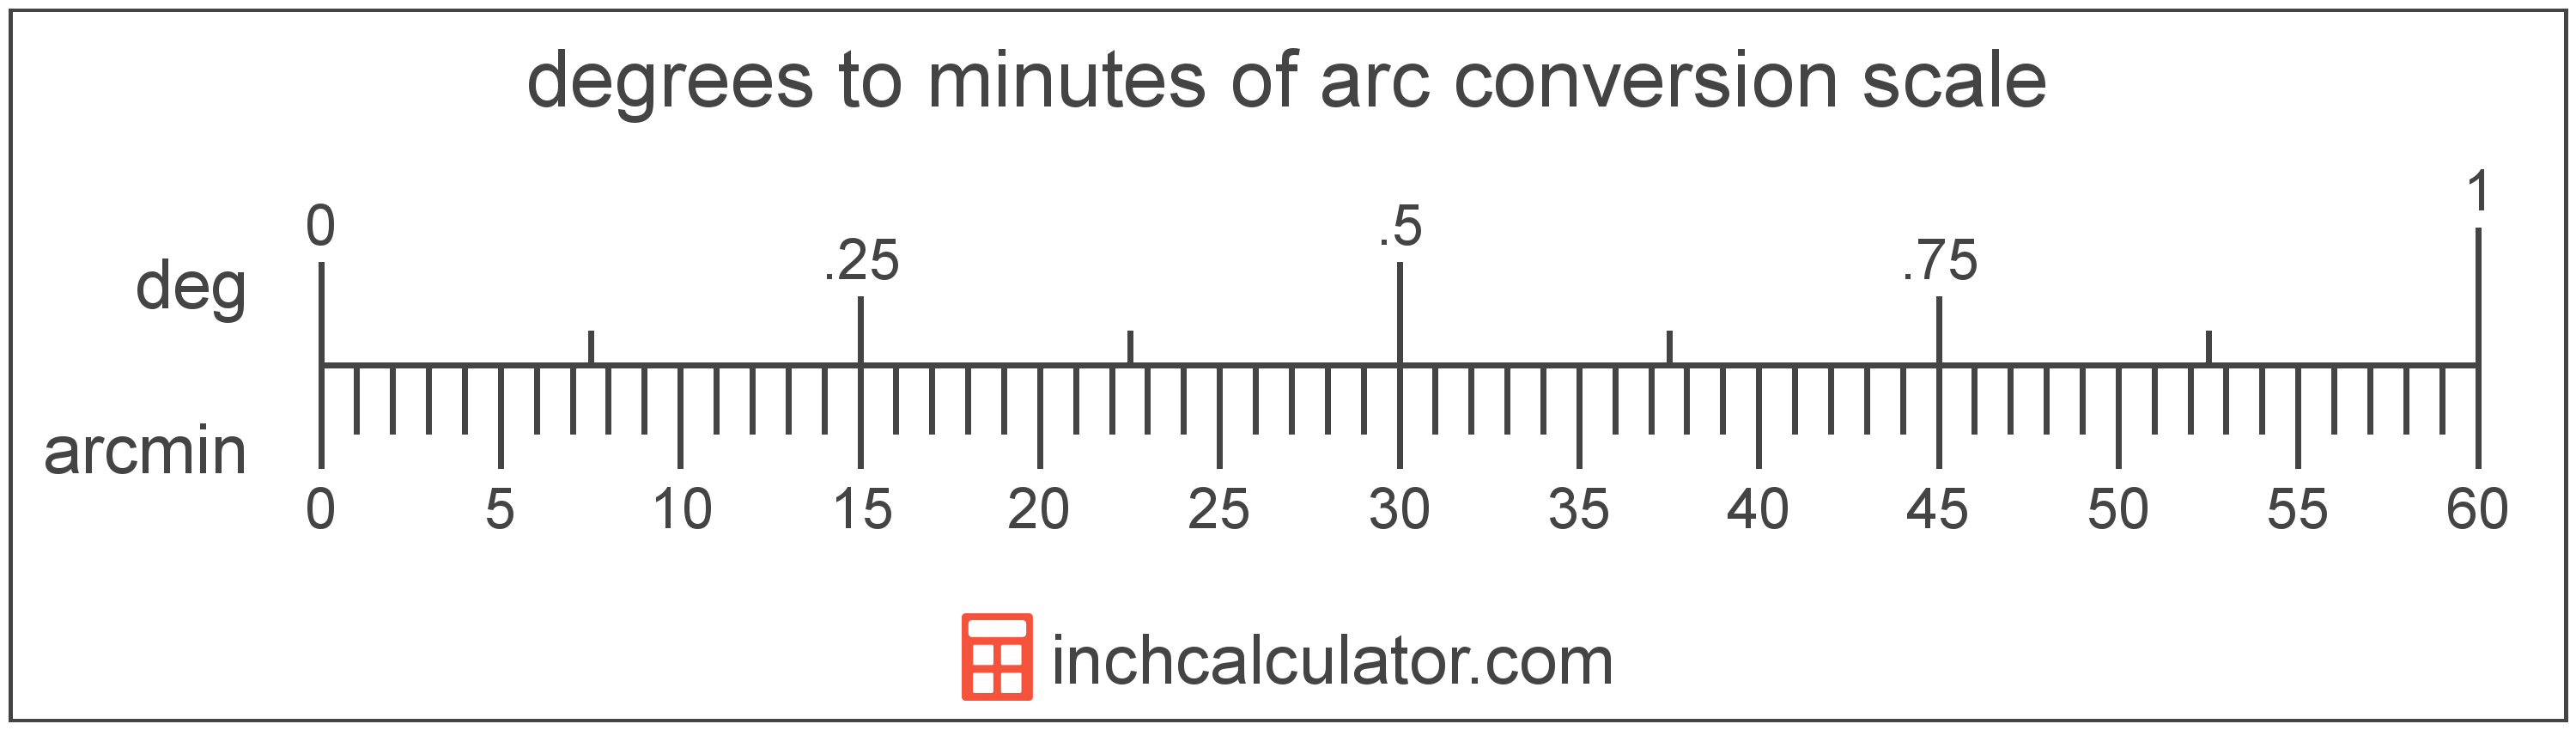 conversion scale showing degrees and equivalent minutes of arc angle values